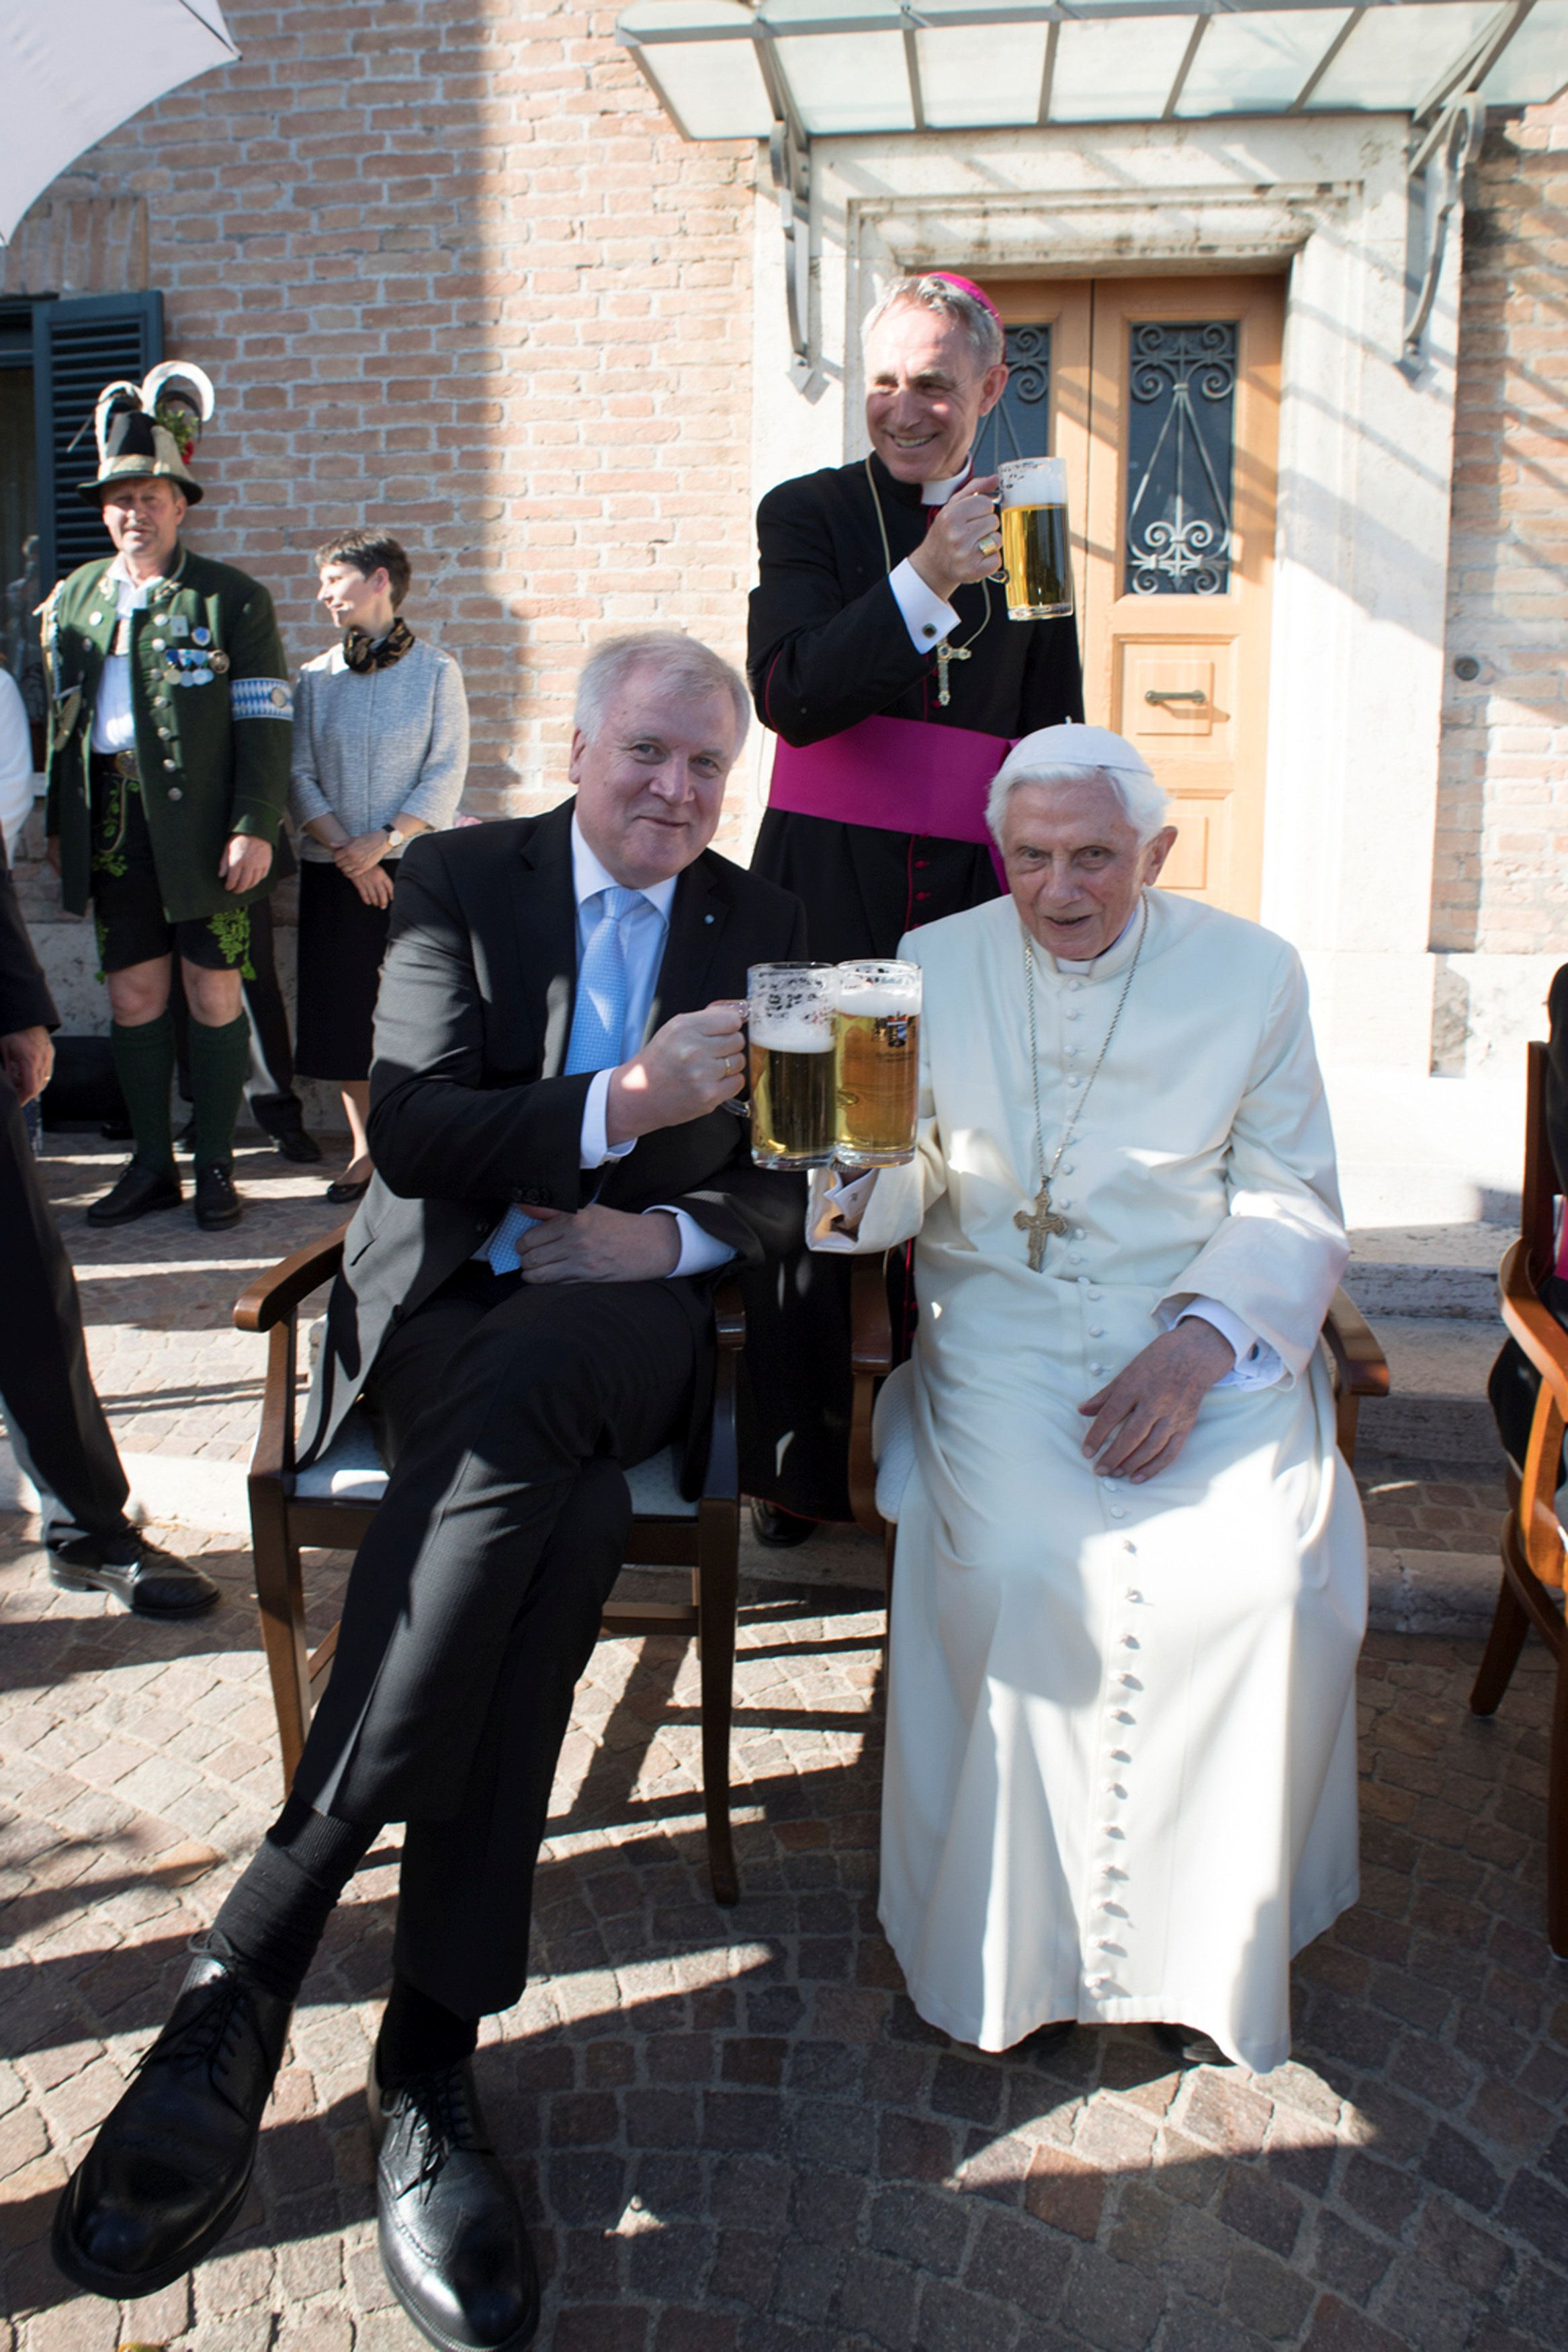 Emeritus Pope Benedict XVI toasts with a member of a German delegation at the Vatican April 17, 2017. Osservatore Romano/Handout via REUTERS ATTENTION EDITORS - THIS PICTURE WAS PROVIDED BY A THIRD PARTY. EDITORIAL USE ONLY. NO RESALES. NO ARCHIVE - RTS12OA1